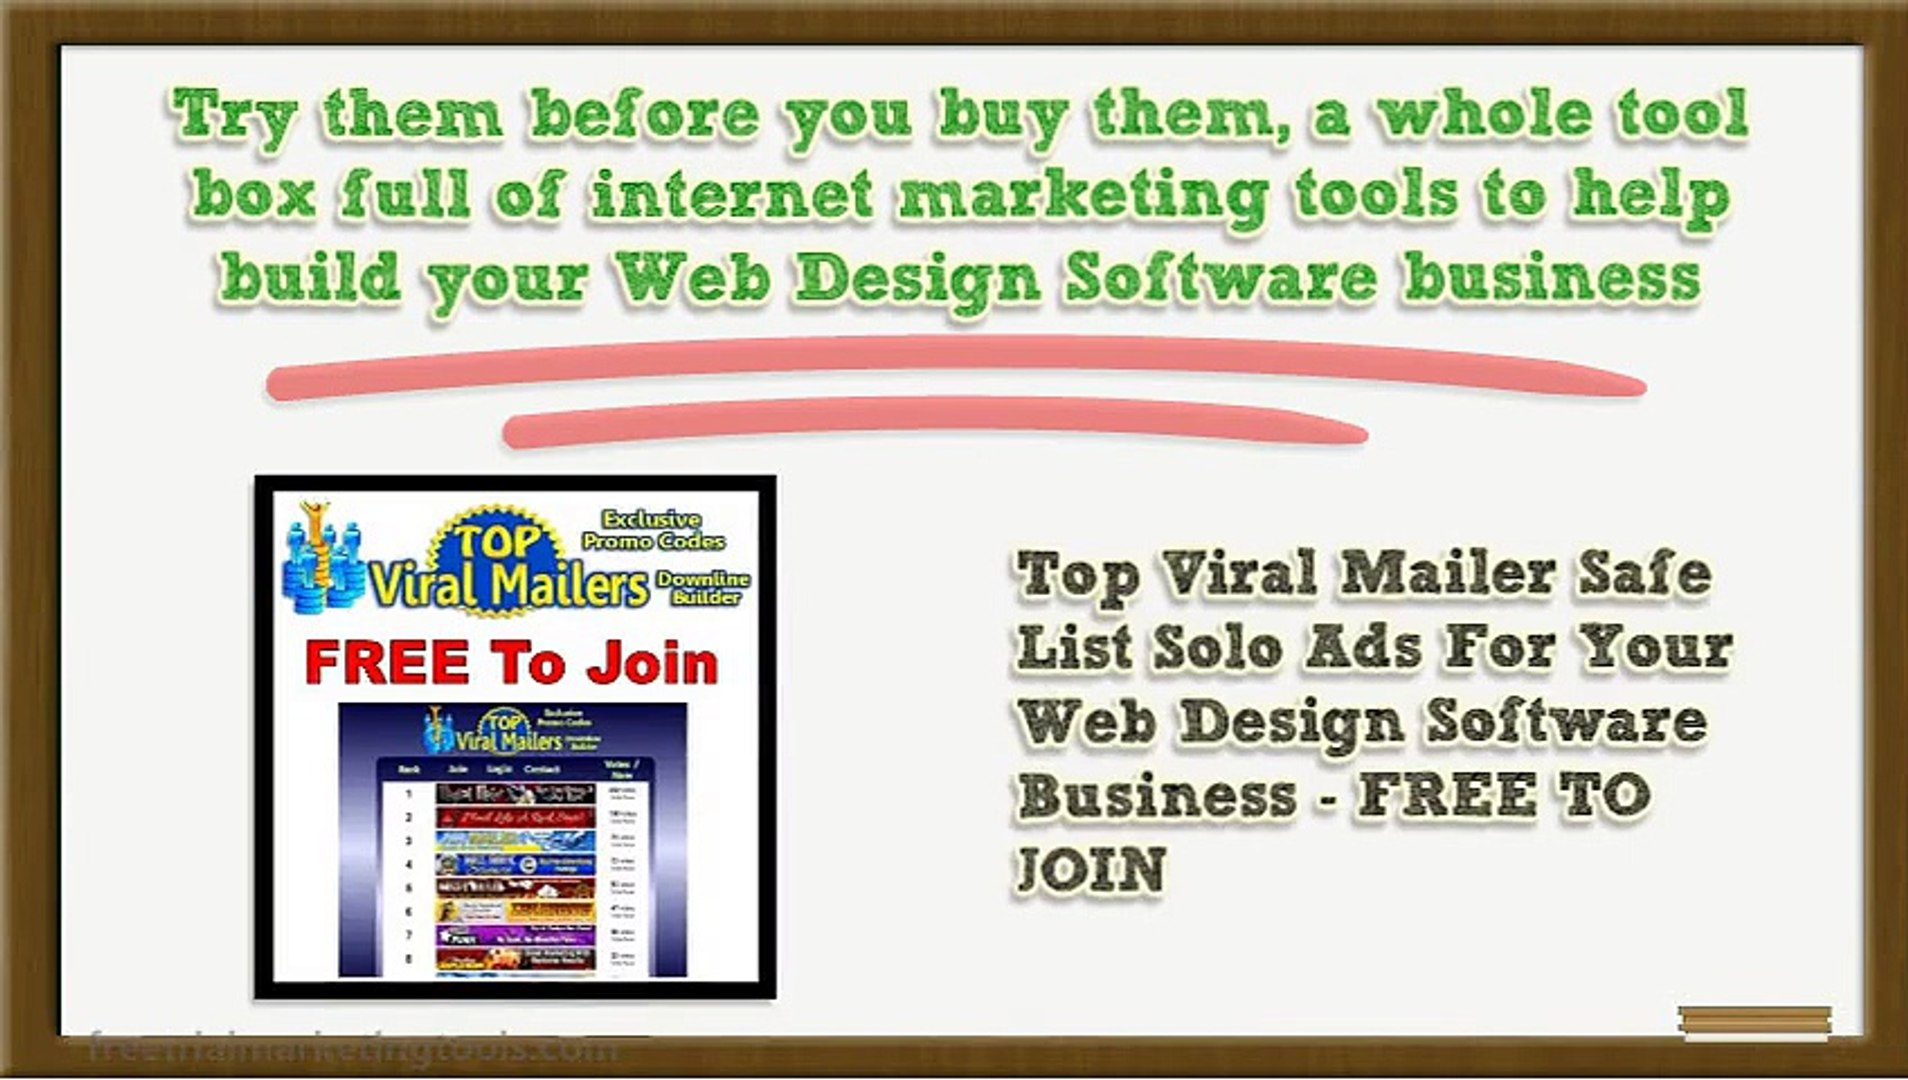 Free Trial Marketing Lead Tools For Web Design Software Business Video Dailymotion